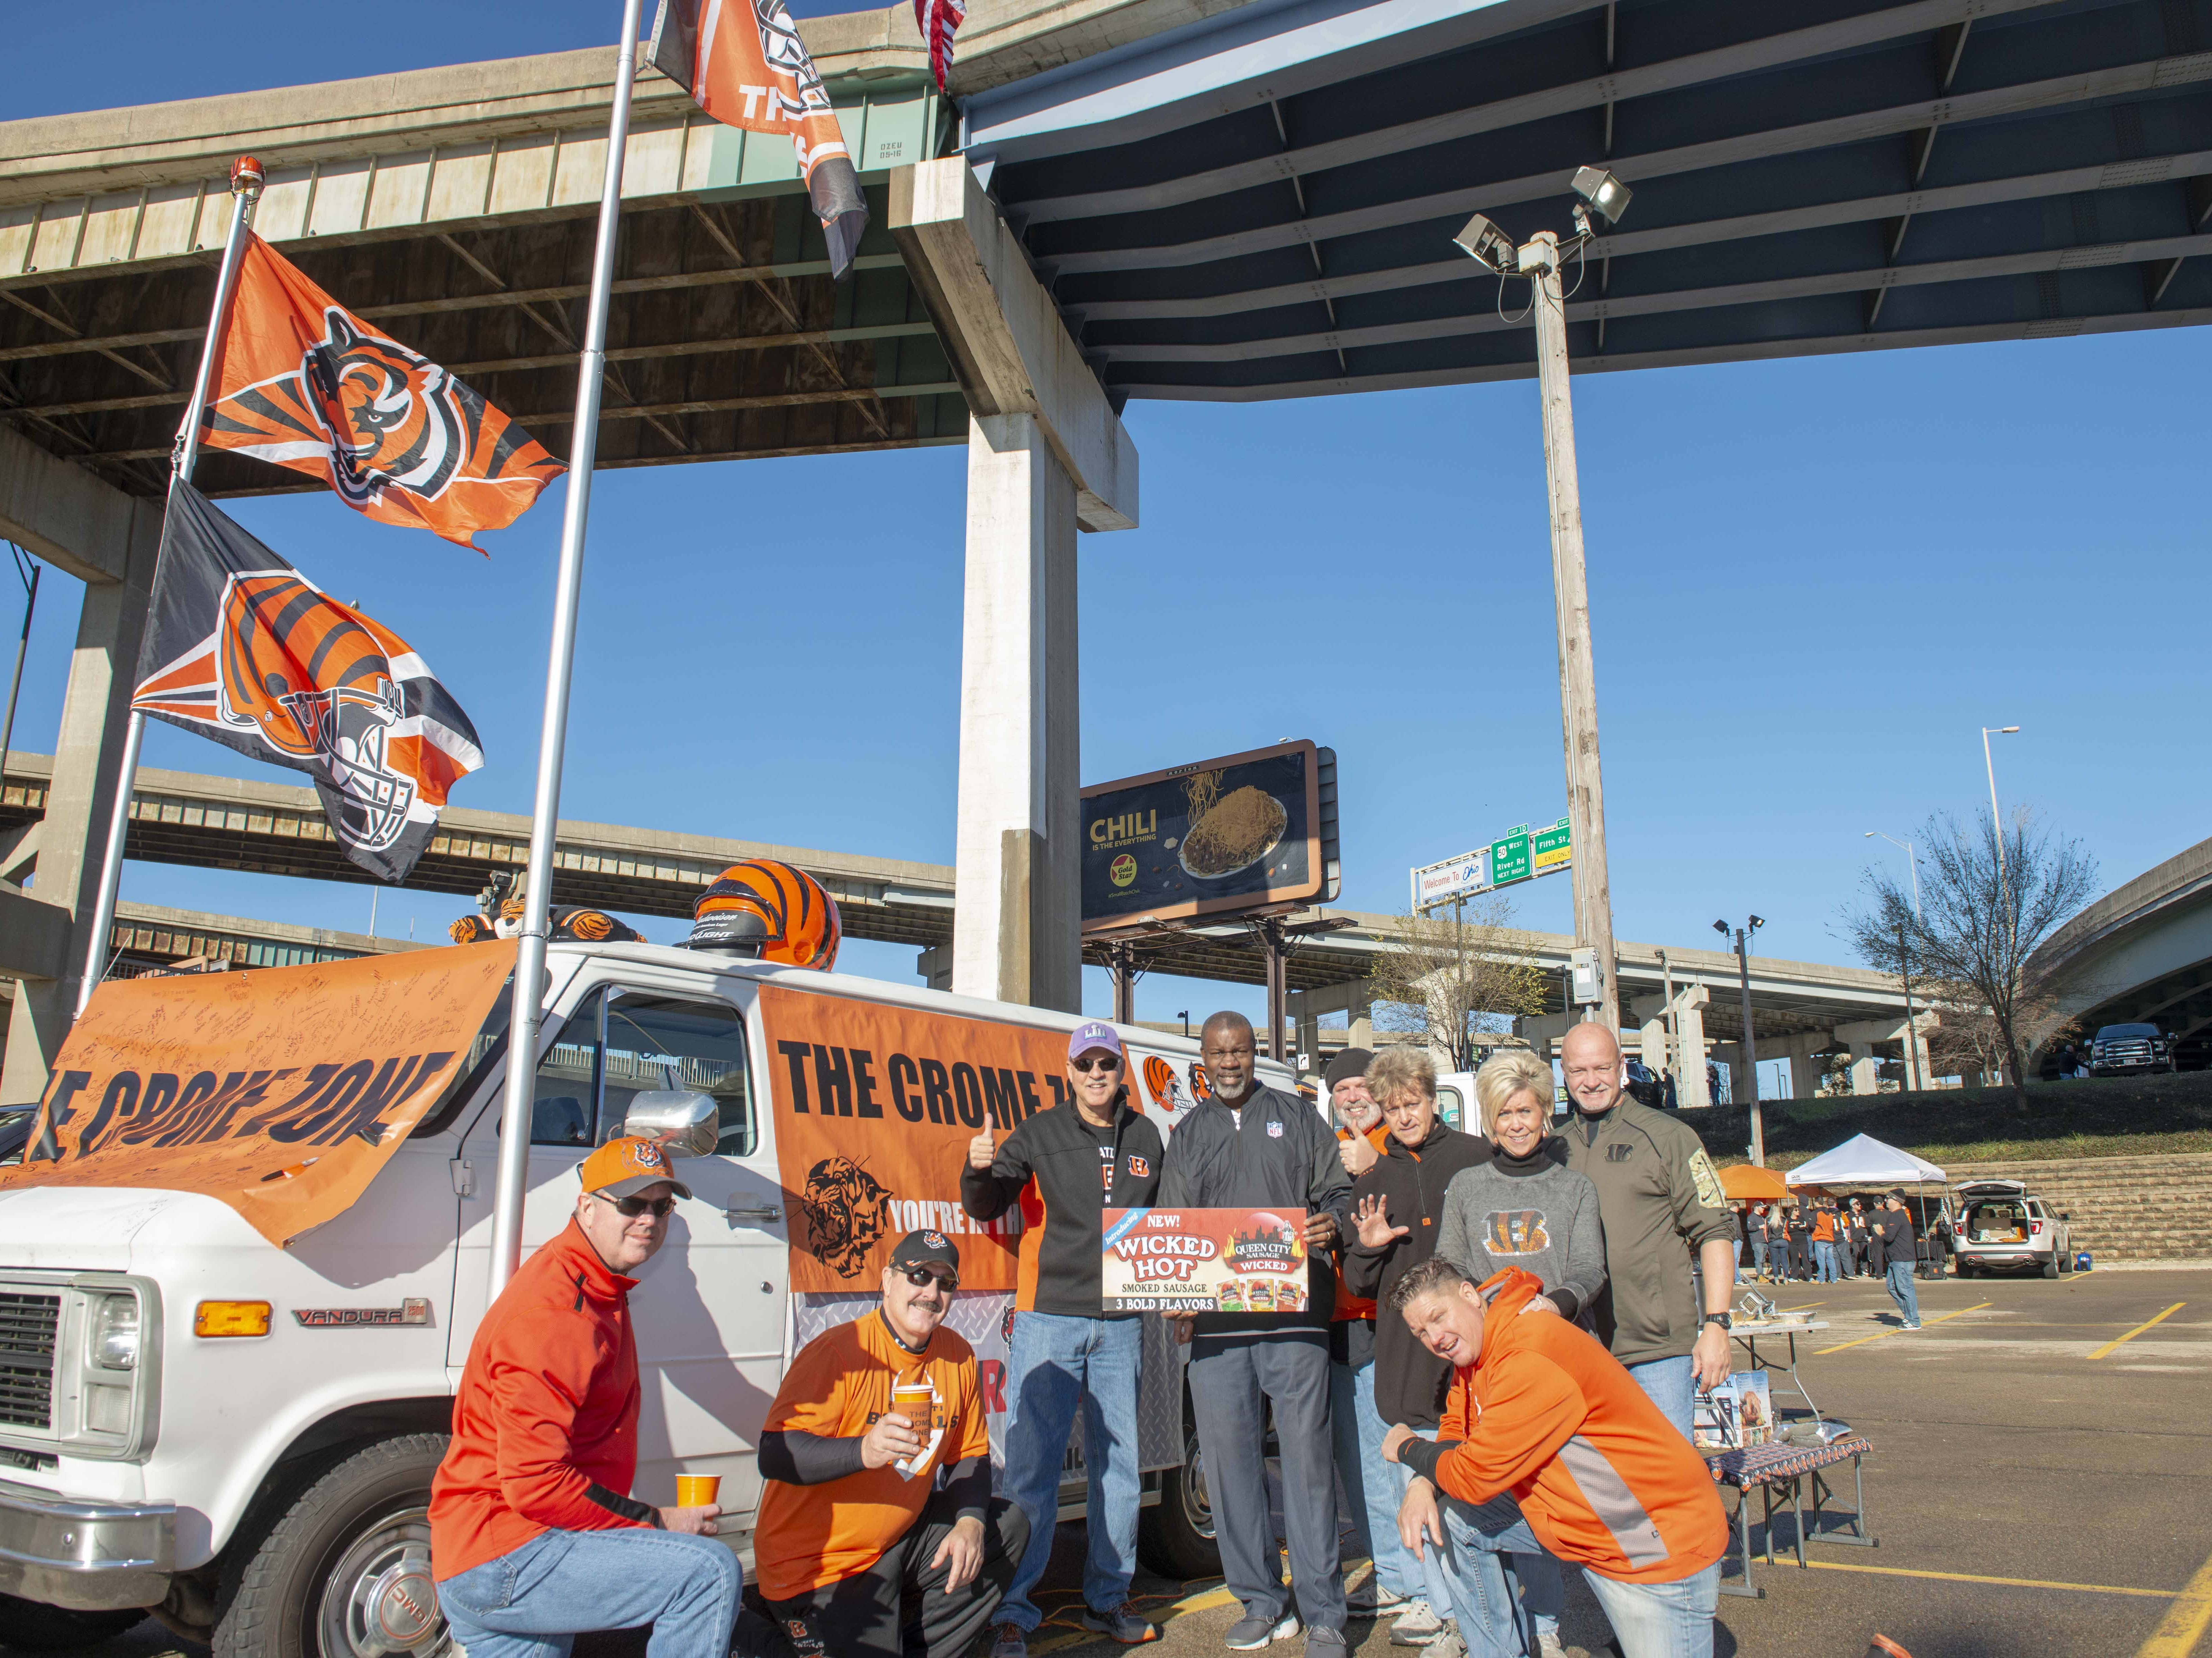 Cincinnati Bengals fans showed up for tailgating parties as the Cincinnati Bengals hosted the Denver Broncos at Paul Brown Stadium Sunday, December 2, 2018. The Crome Zone with former Bengal David Fulcher.